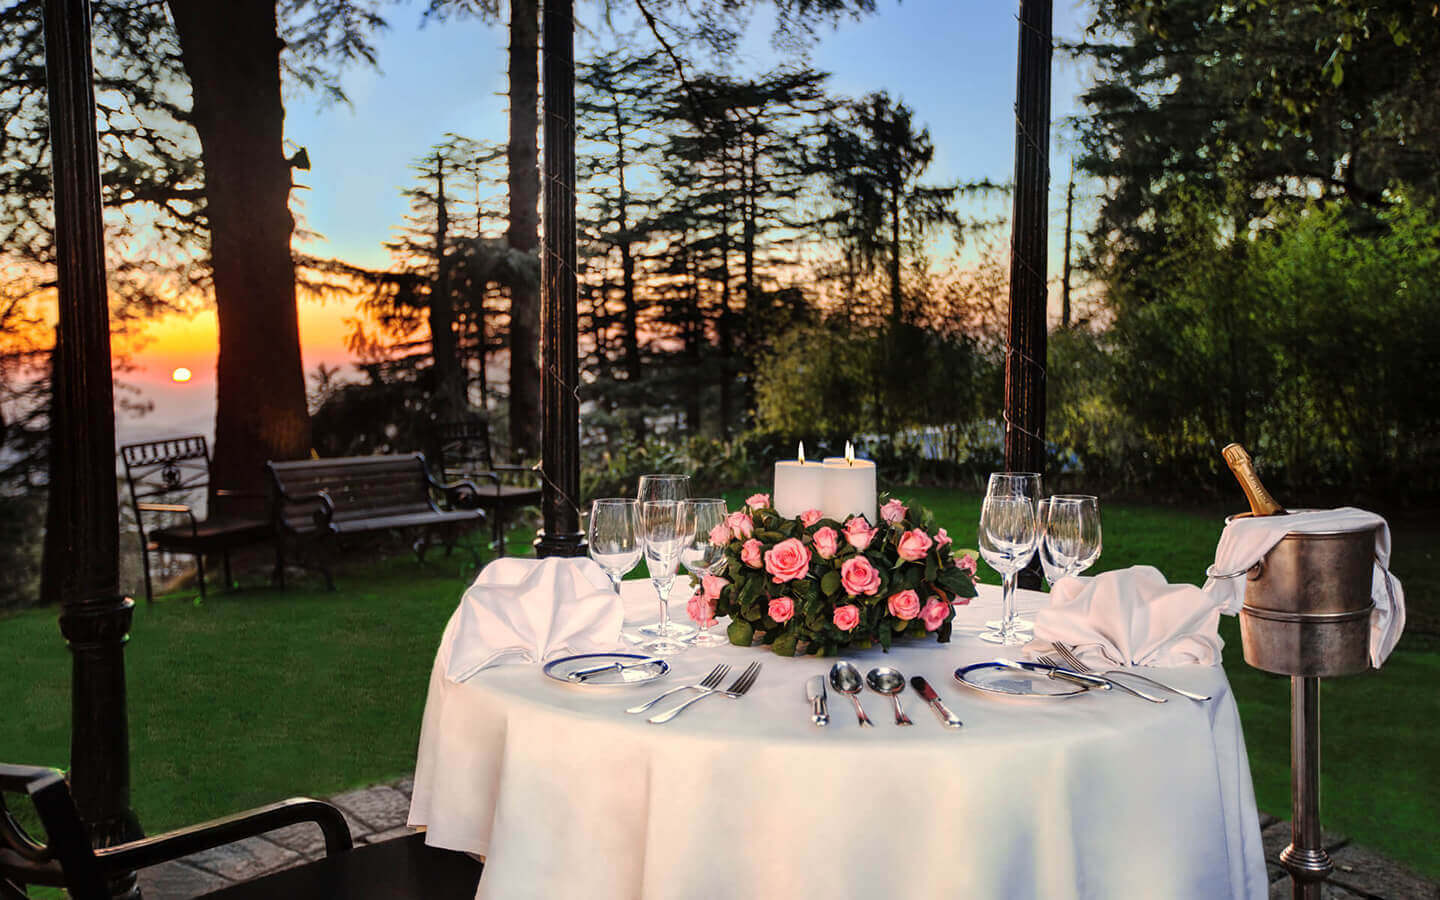 Cost of Destination Wedding in Shimla: *Extravagance*